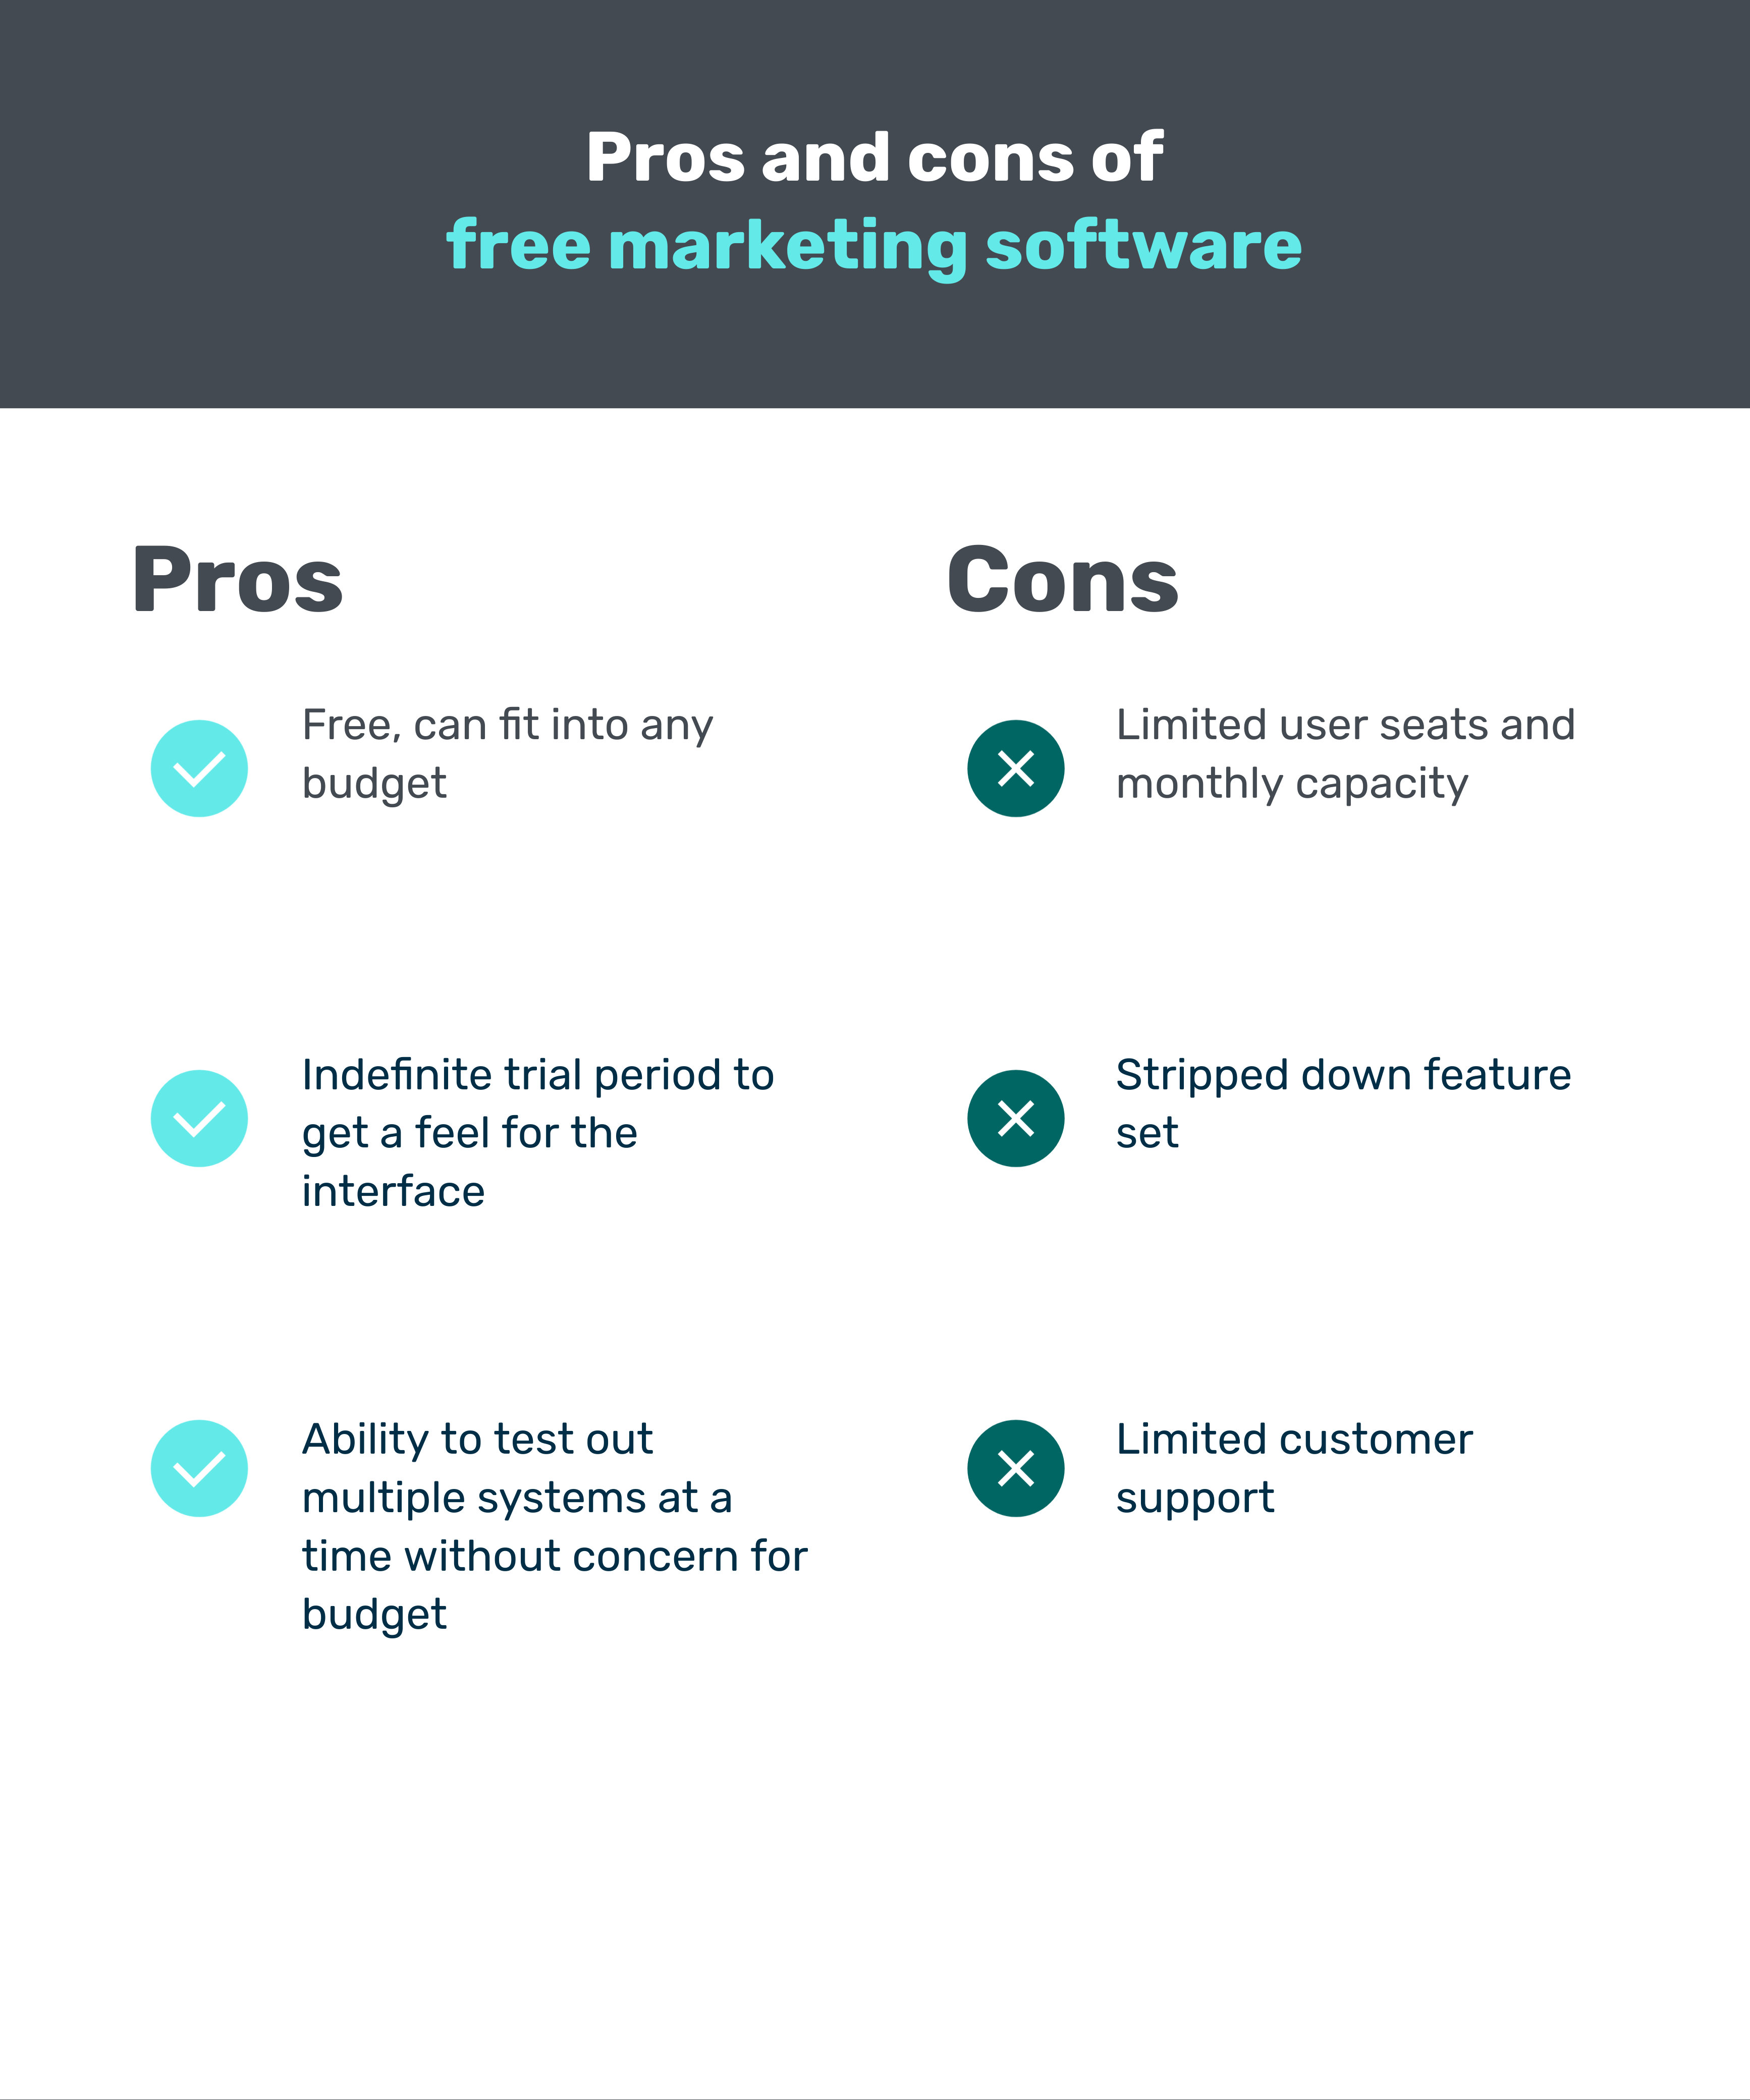 Pros and cons of free marketing software